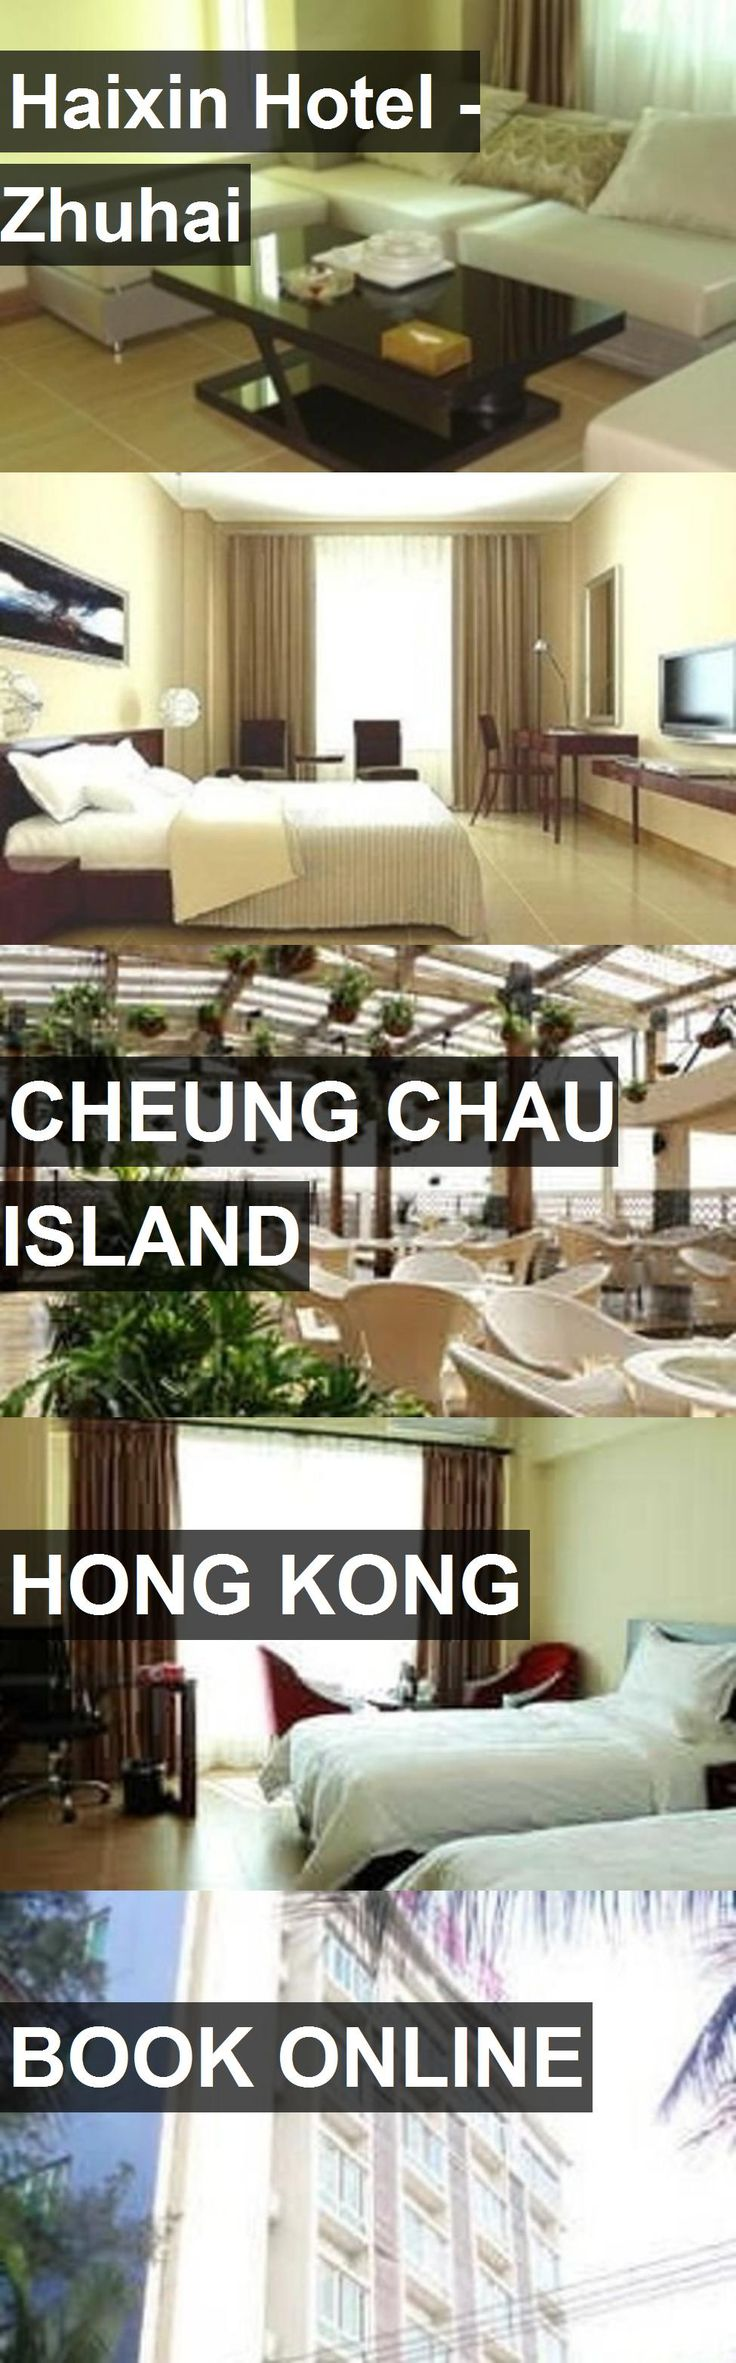 Hotel Haixin Hotel - Zhuhai in Cheung Chau Island, Hong Kong. For more information, photos, reviews and best prices please follow the link. #HongKong #CheungChauIsland #HaixinHotel-Zhuhai #hotel #travel #vacation